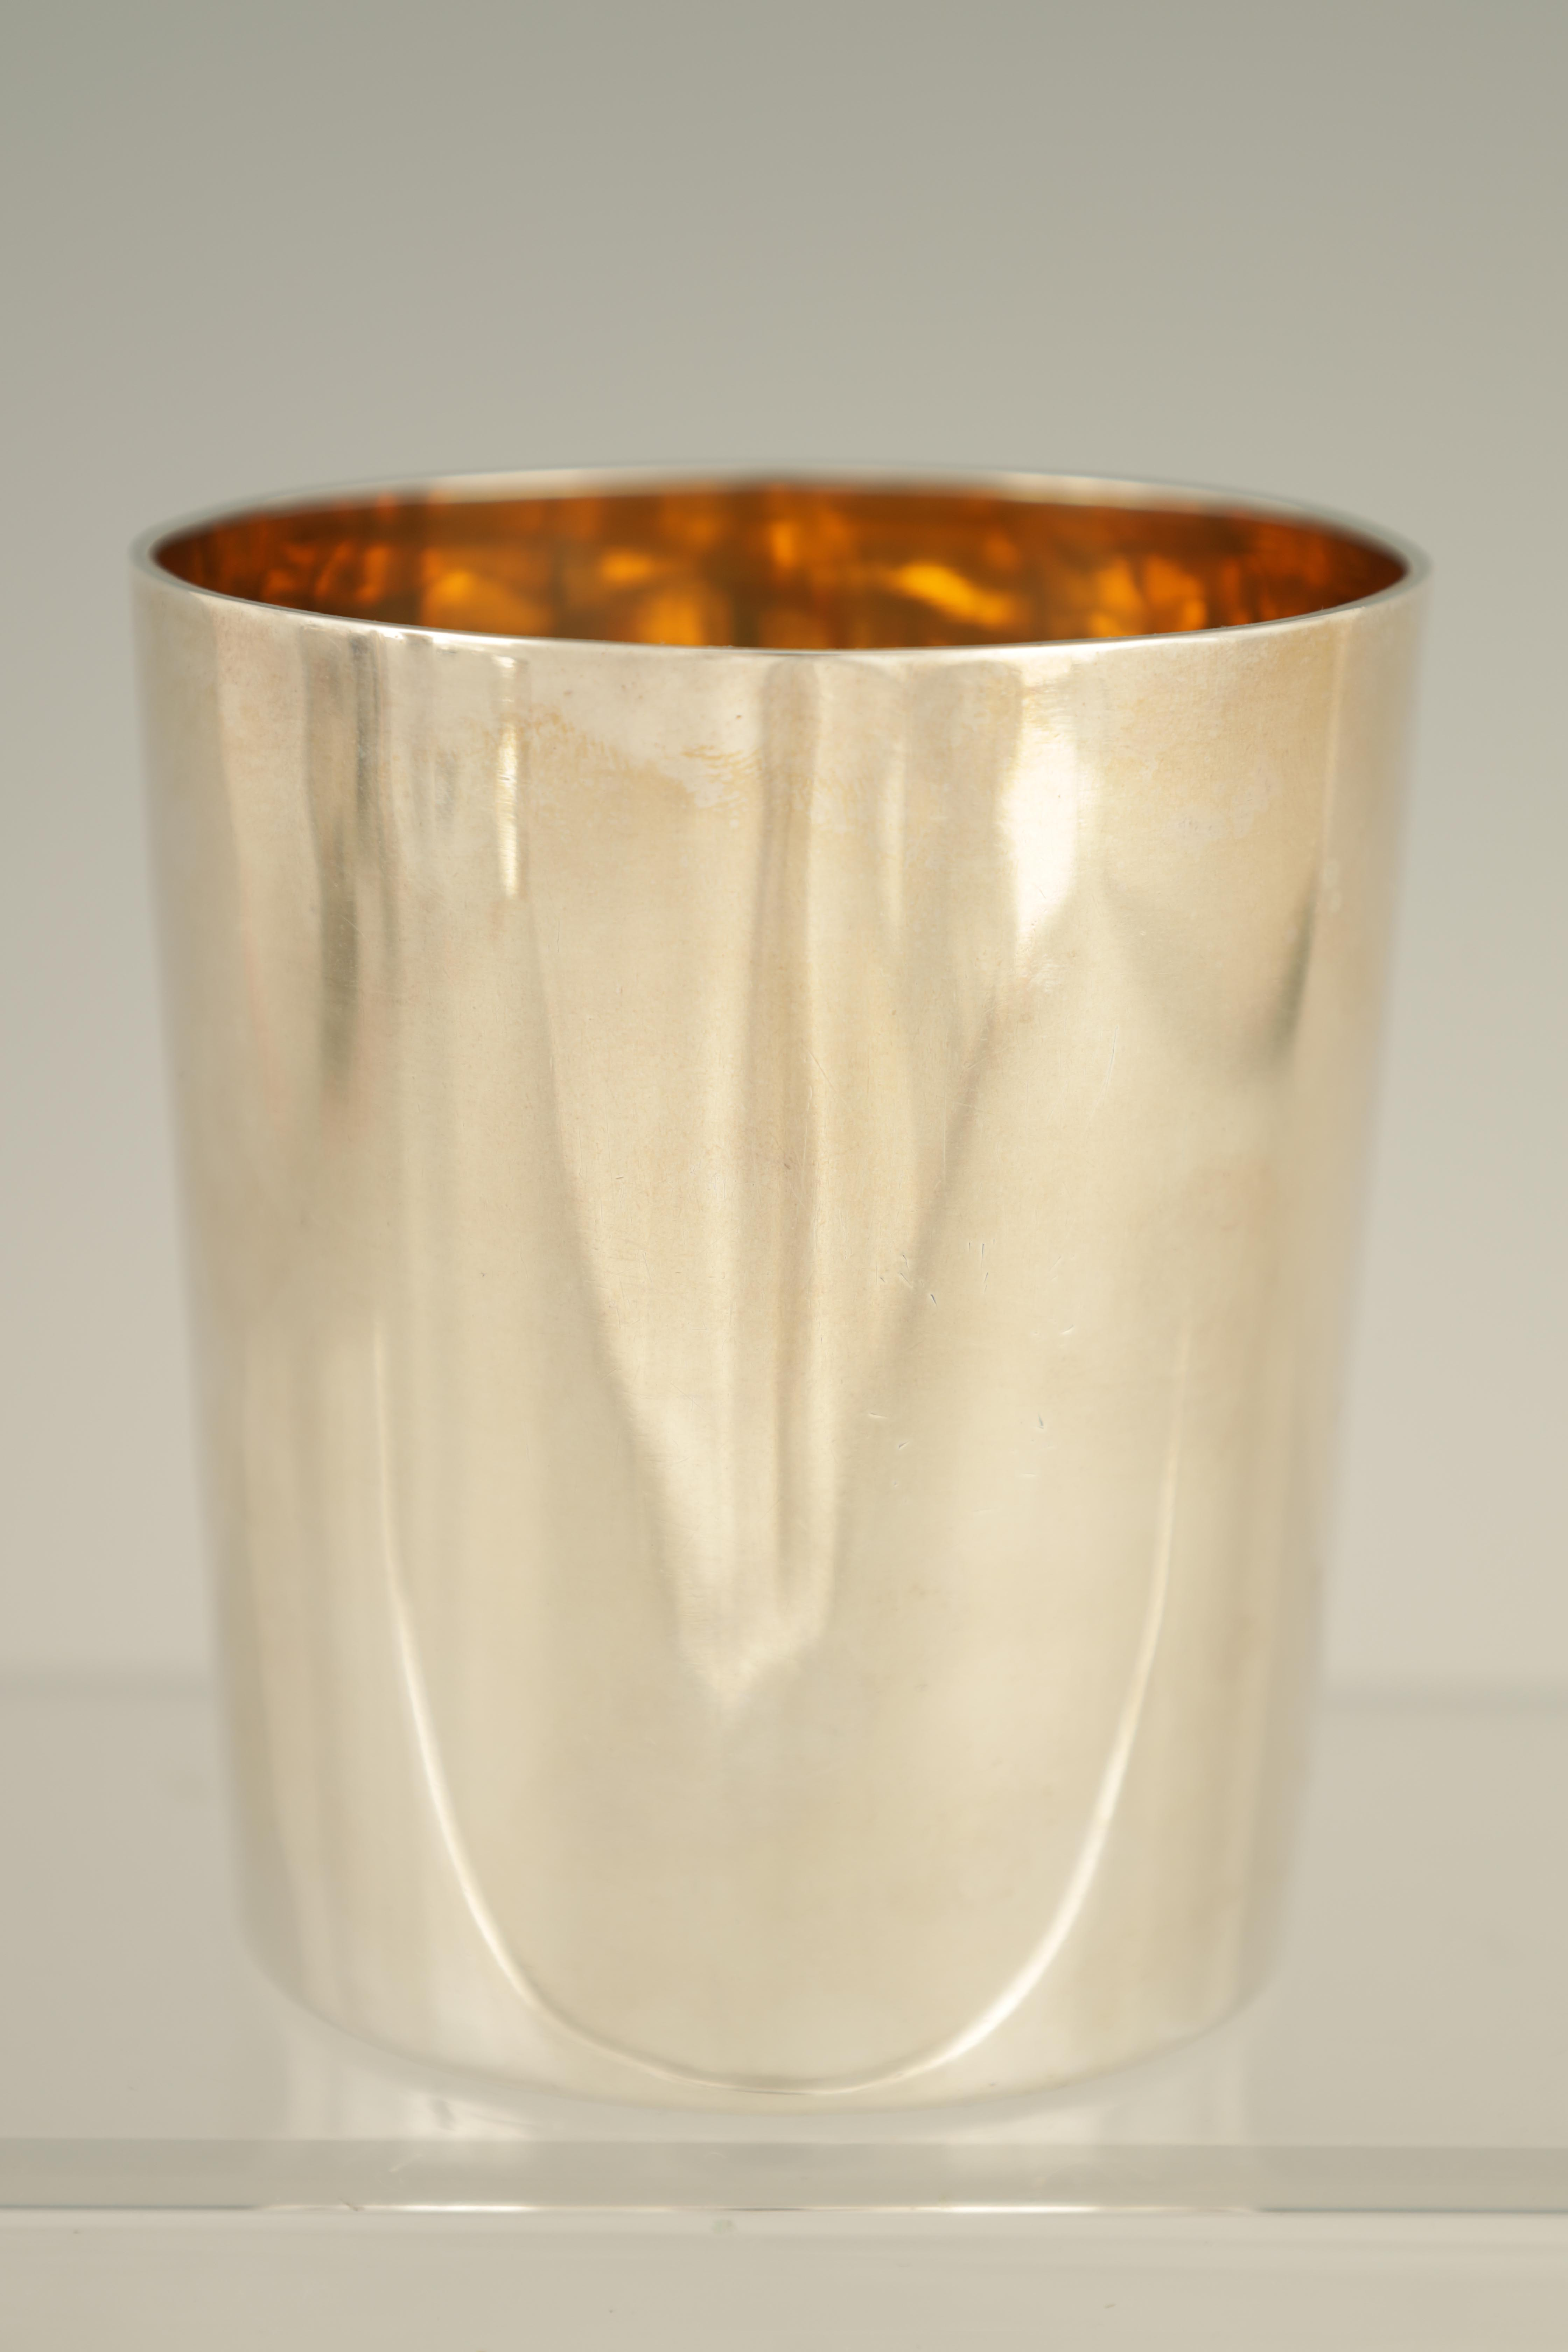 A GEORGE III SILVER BEAKER with gilt interior and coat of arms to the front, London 1802 9cm high - Image 2 of 5